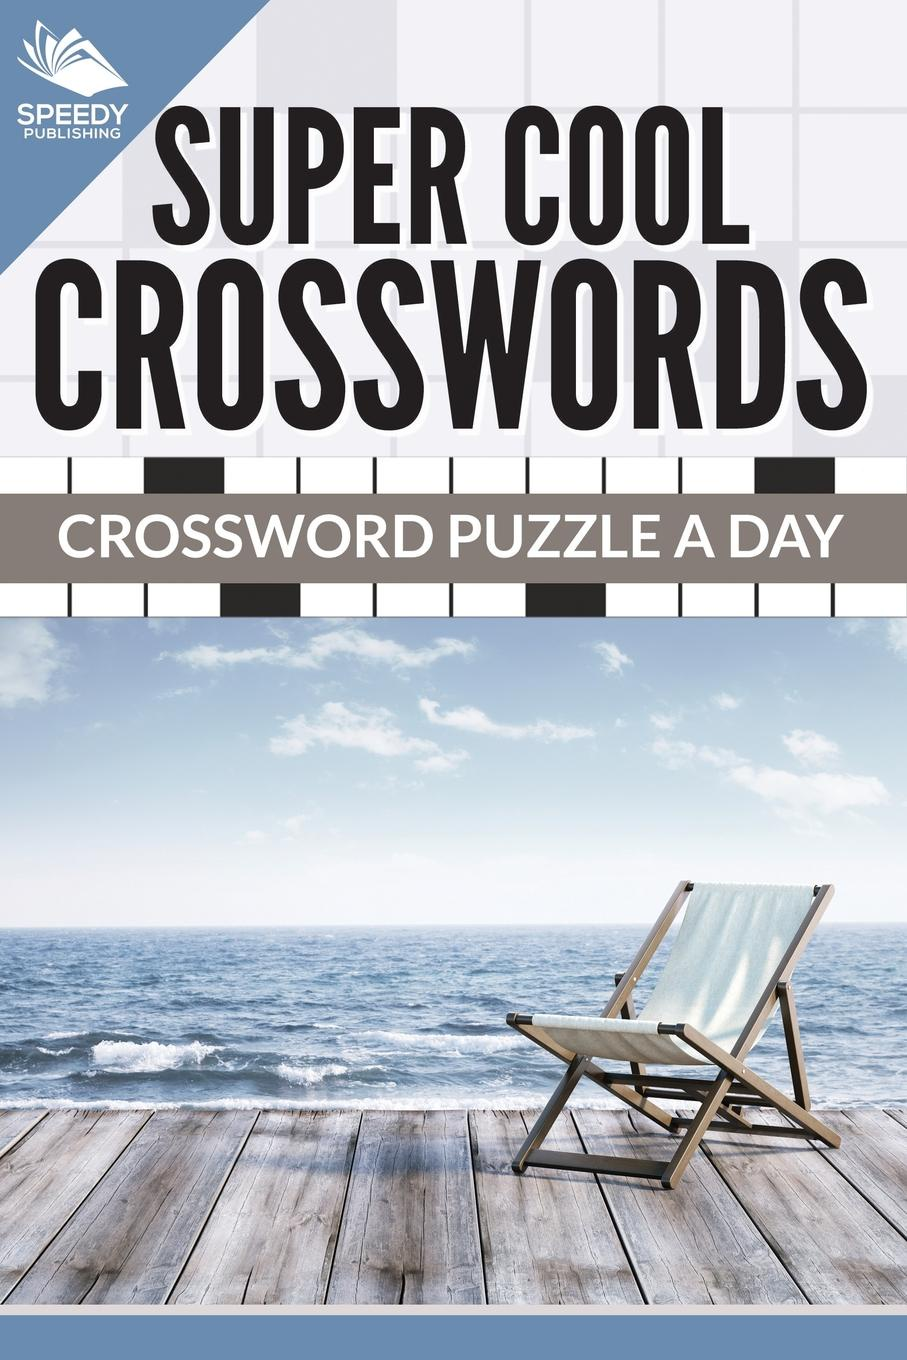 Speedy Publishing LLC. Super Cool Crosswords. Crossword Puzzle A Day